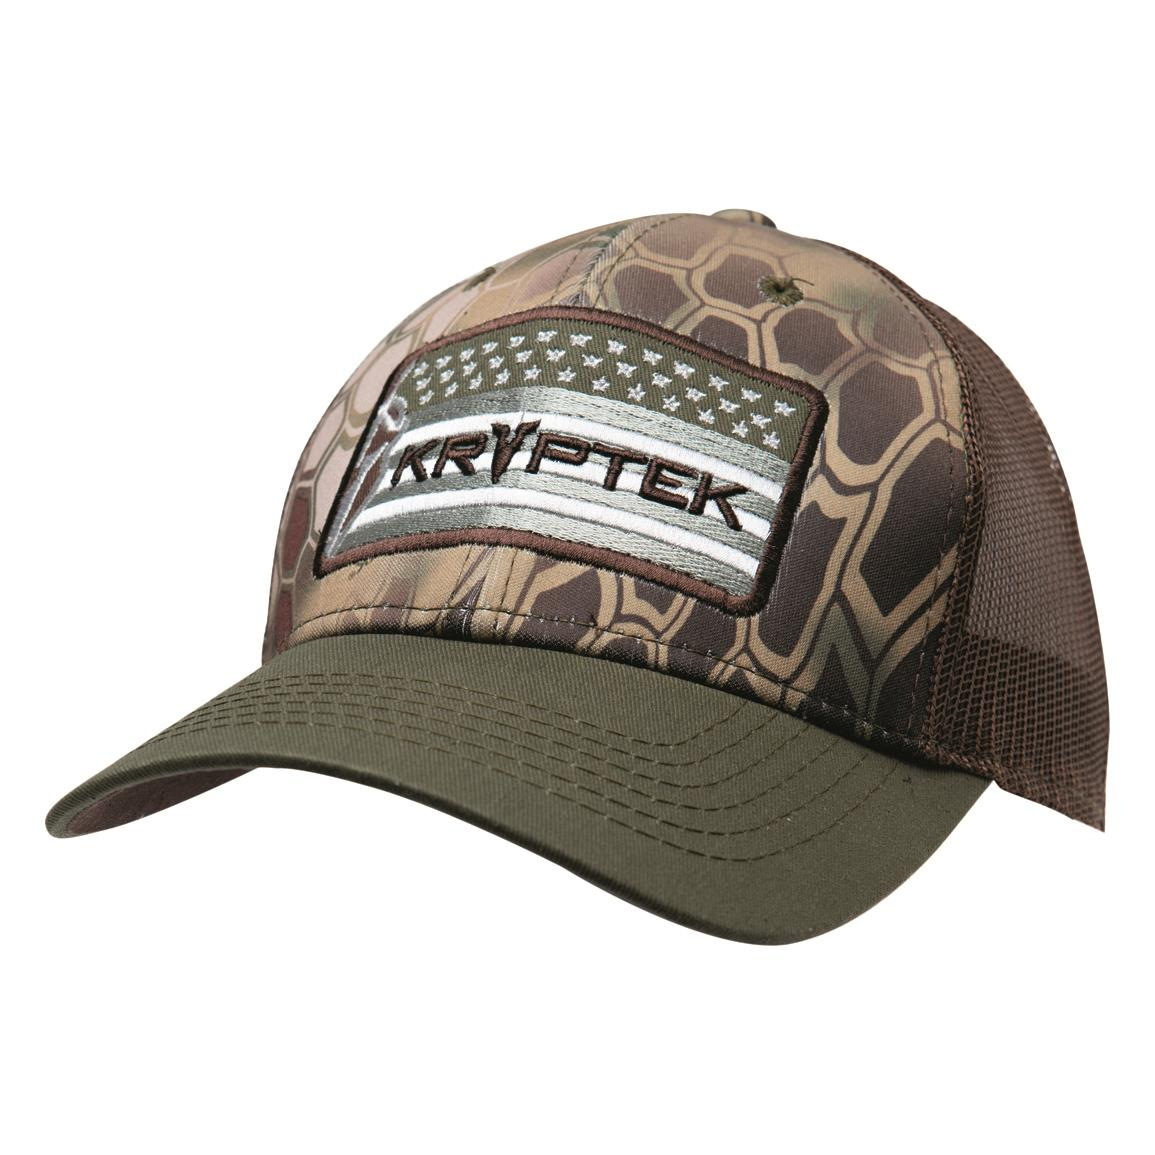 Kryptek USA Warrior Cap, Kryptek® Mandrake™